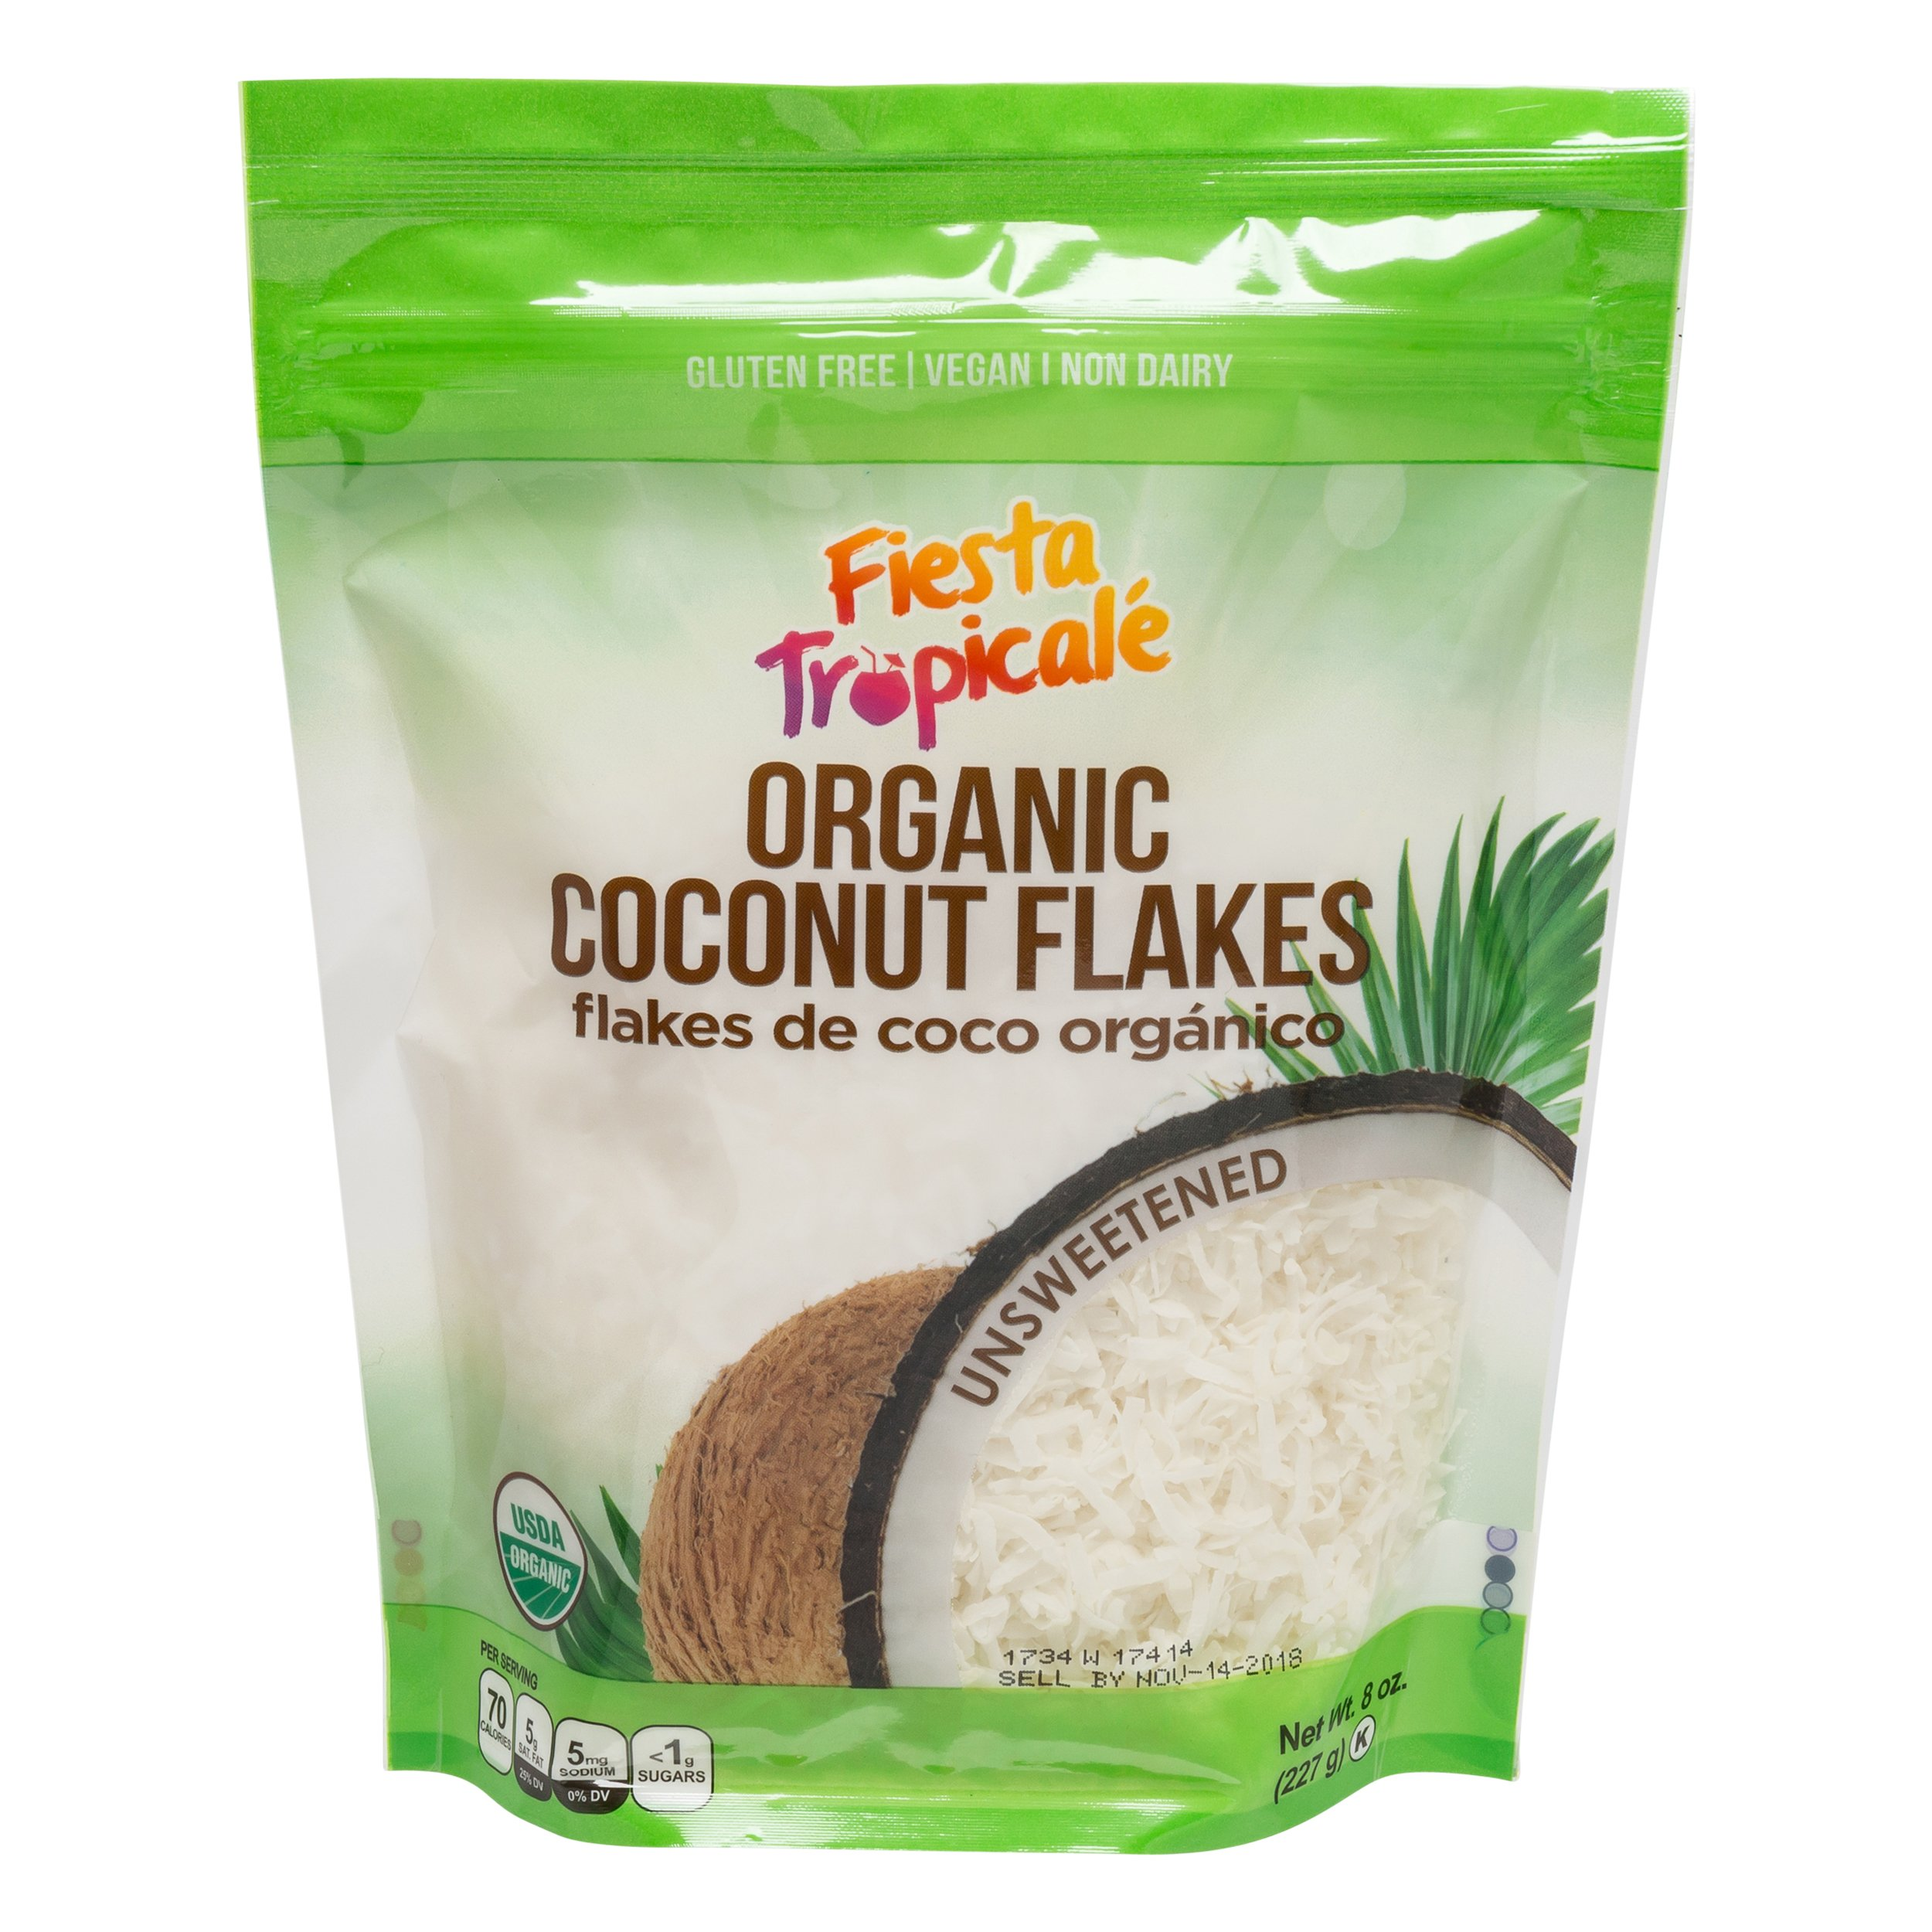 Shredded Coconut Flakes Organic Unsweetened 8 Ounce Bag (Pack of 3) Desiccated Gluten-Free Sugar-Free, Great for Vegan Paleo Keto Recipes, Smoothies Oatmeal Fruits by Fiesta Tropicale